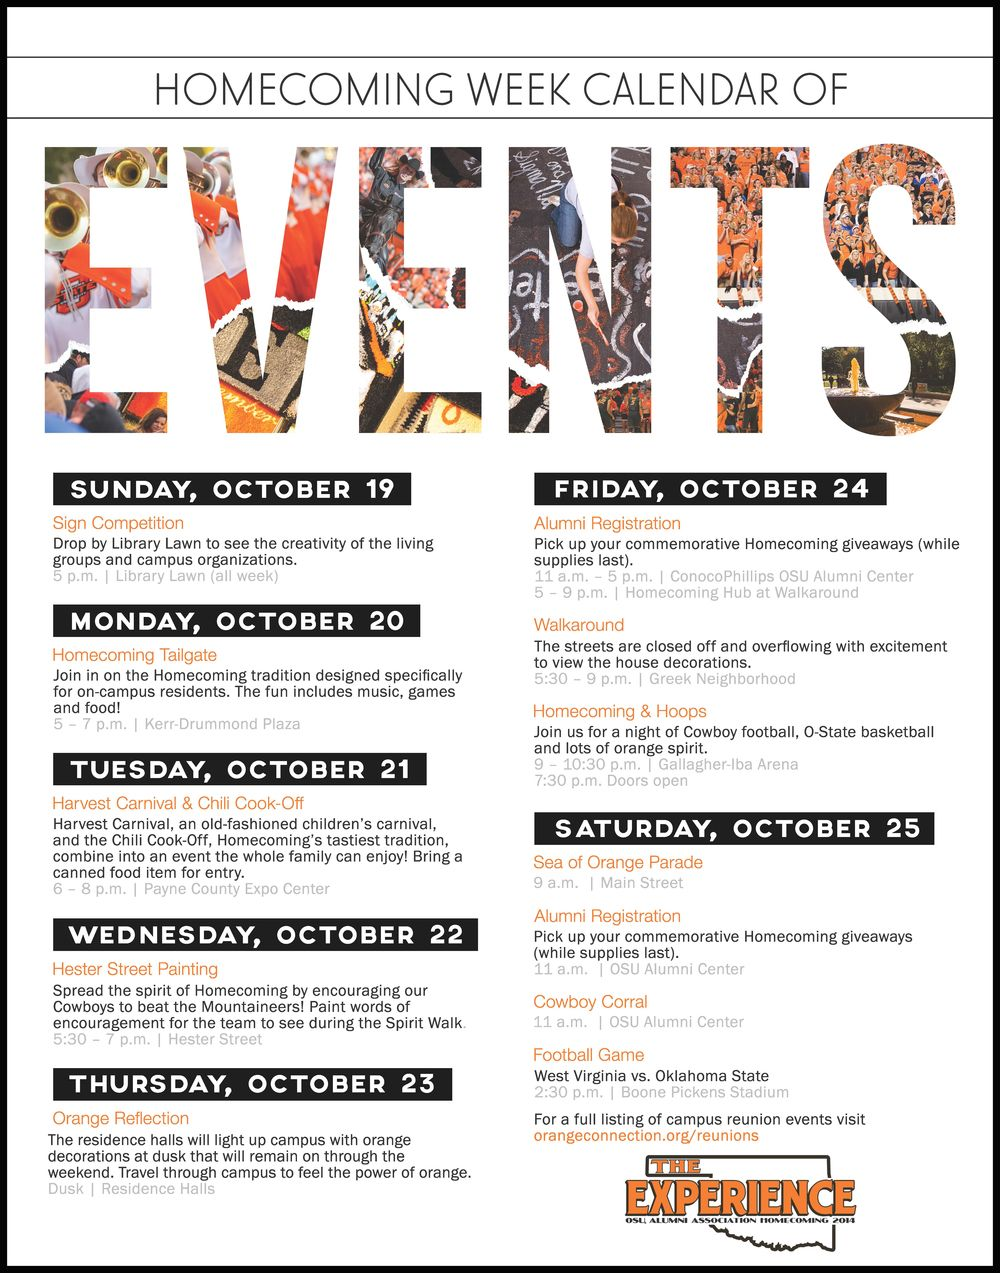 Schedule Of Events Flyer  Google Search  Sample Flyers